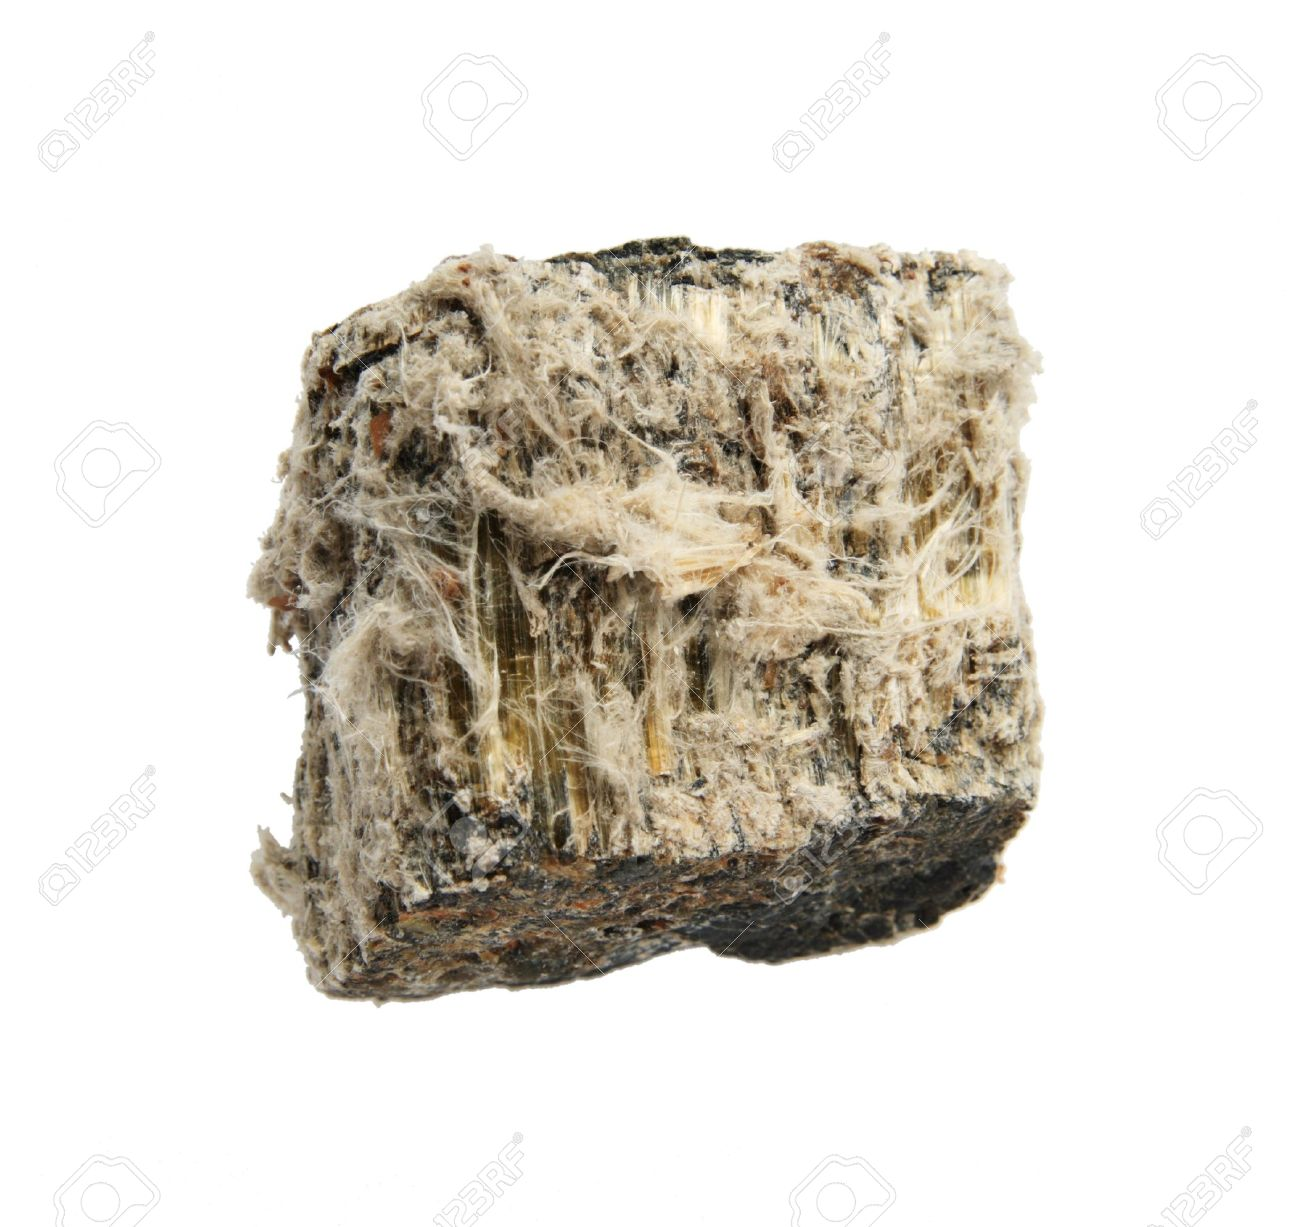 rock sample of mineral asbestos isolated on white Stock Photo - 4422975